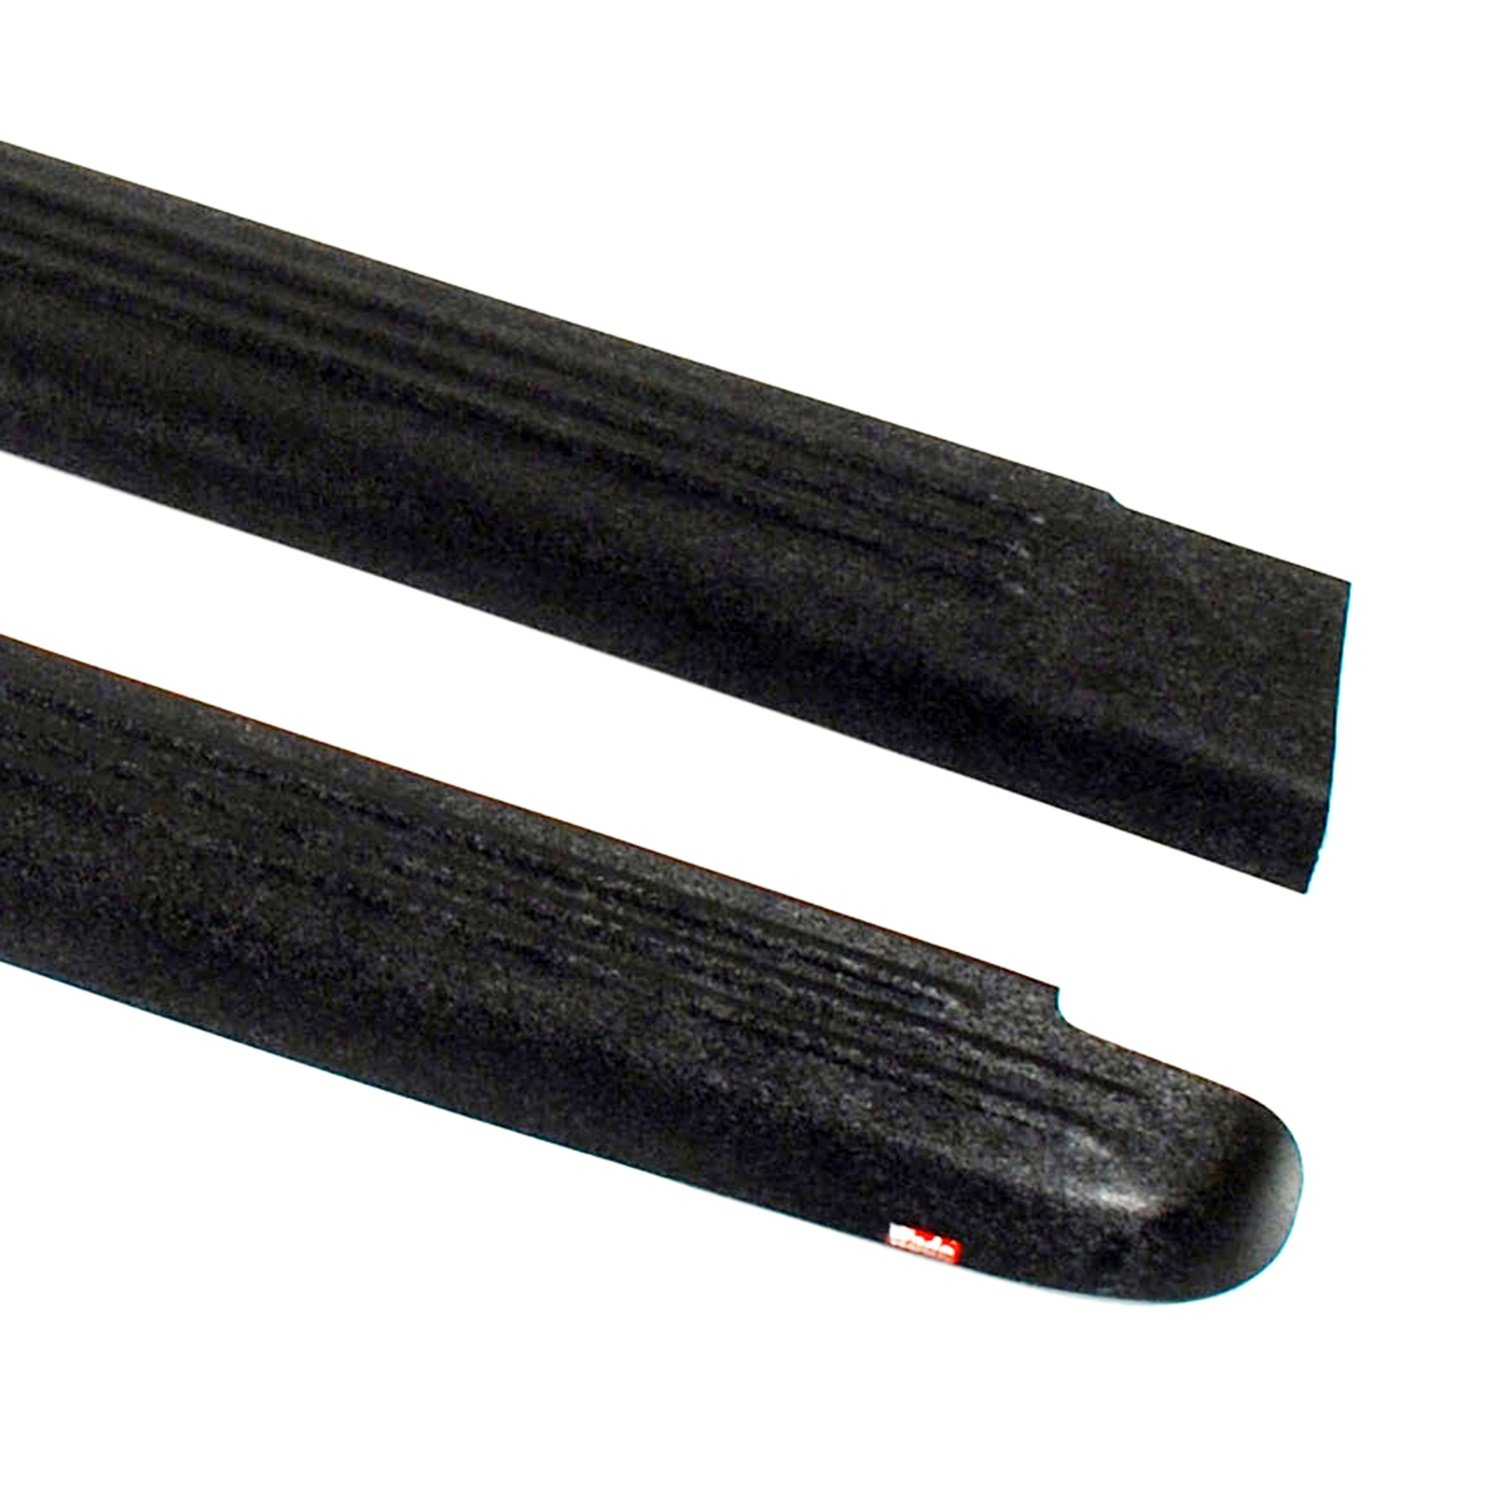 Wade 72-00181 Truck Bed Rail Caps Black Ribbed Finish without Stake Holes for 2004-2012 Chevrolet Colorado & GMC Canyon Standard Cab Extended Cab (Set of 2) Westin